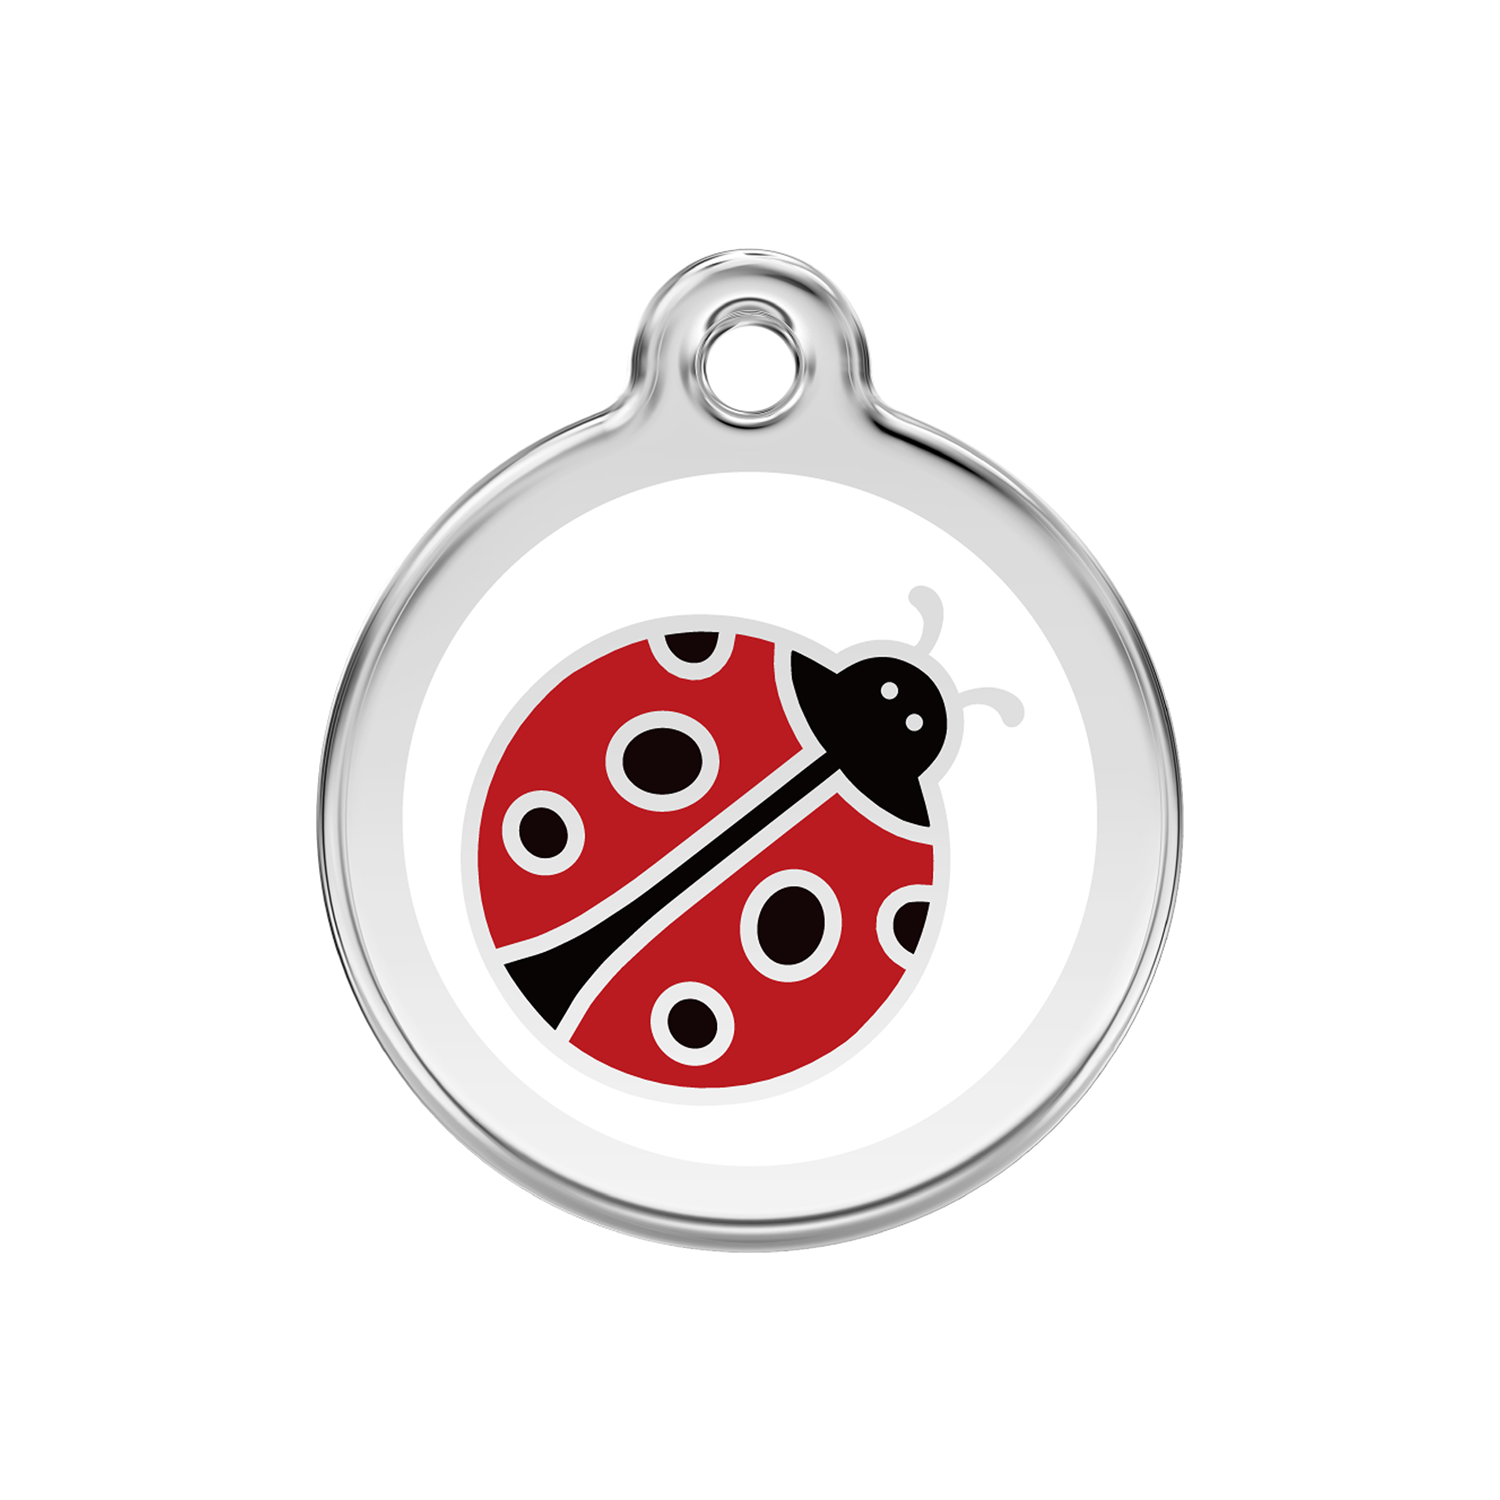 Ladybug Medium Enamel & Stainless Steel Tag>